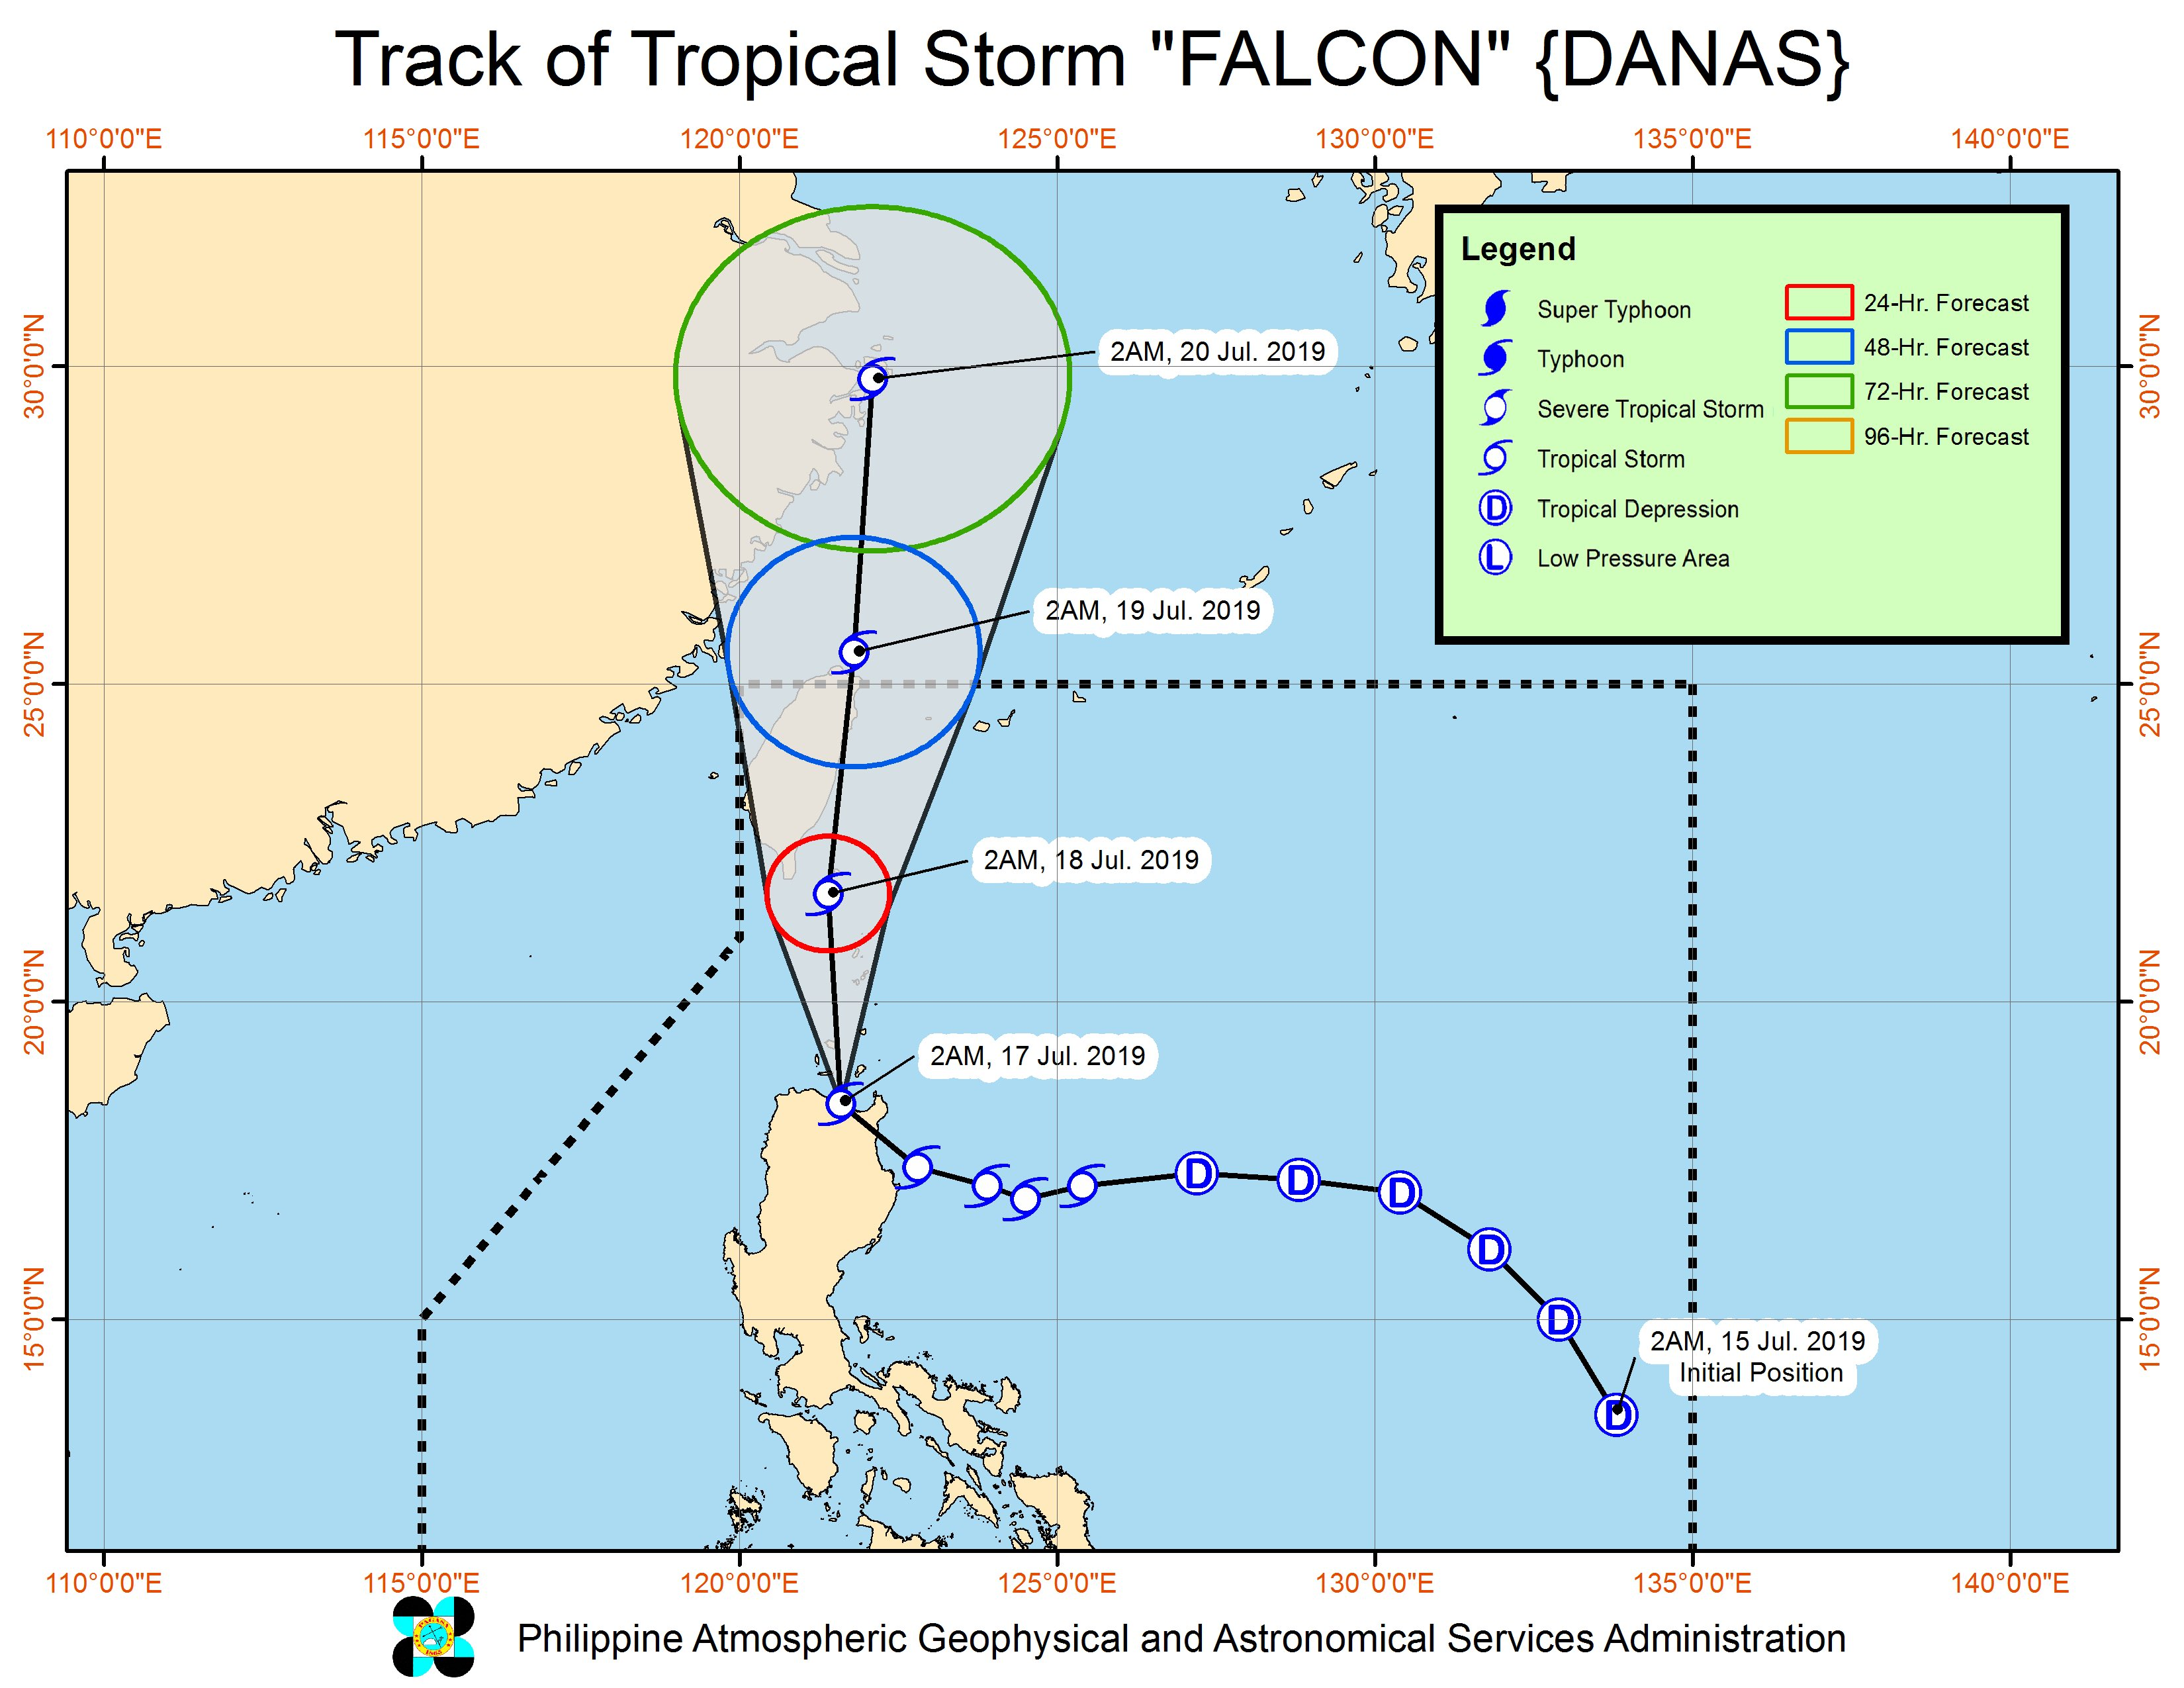 Forecast track of Tropical Storm Falcon (Danas) as of July 17, 2019, 5 am. Image from PAGASA